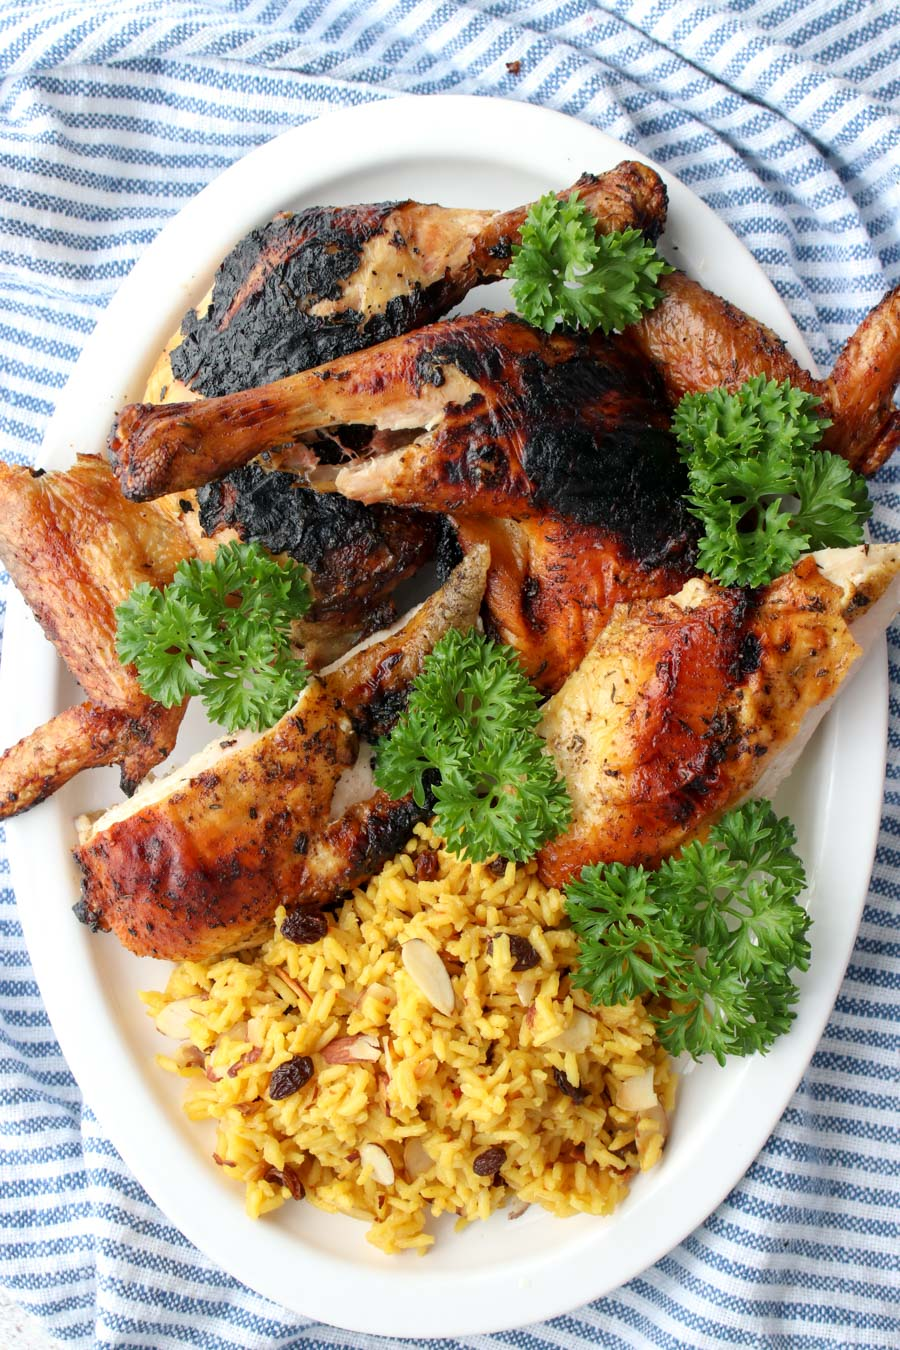 Grilled chicken and yellow rice on a white platter